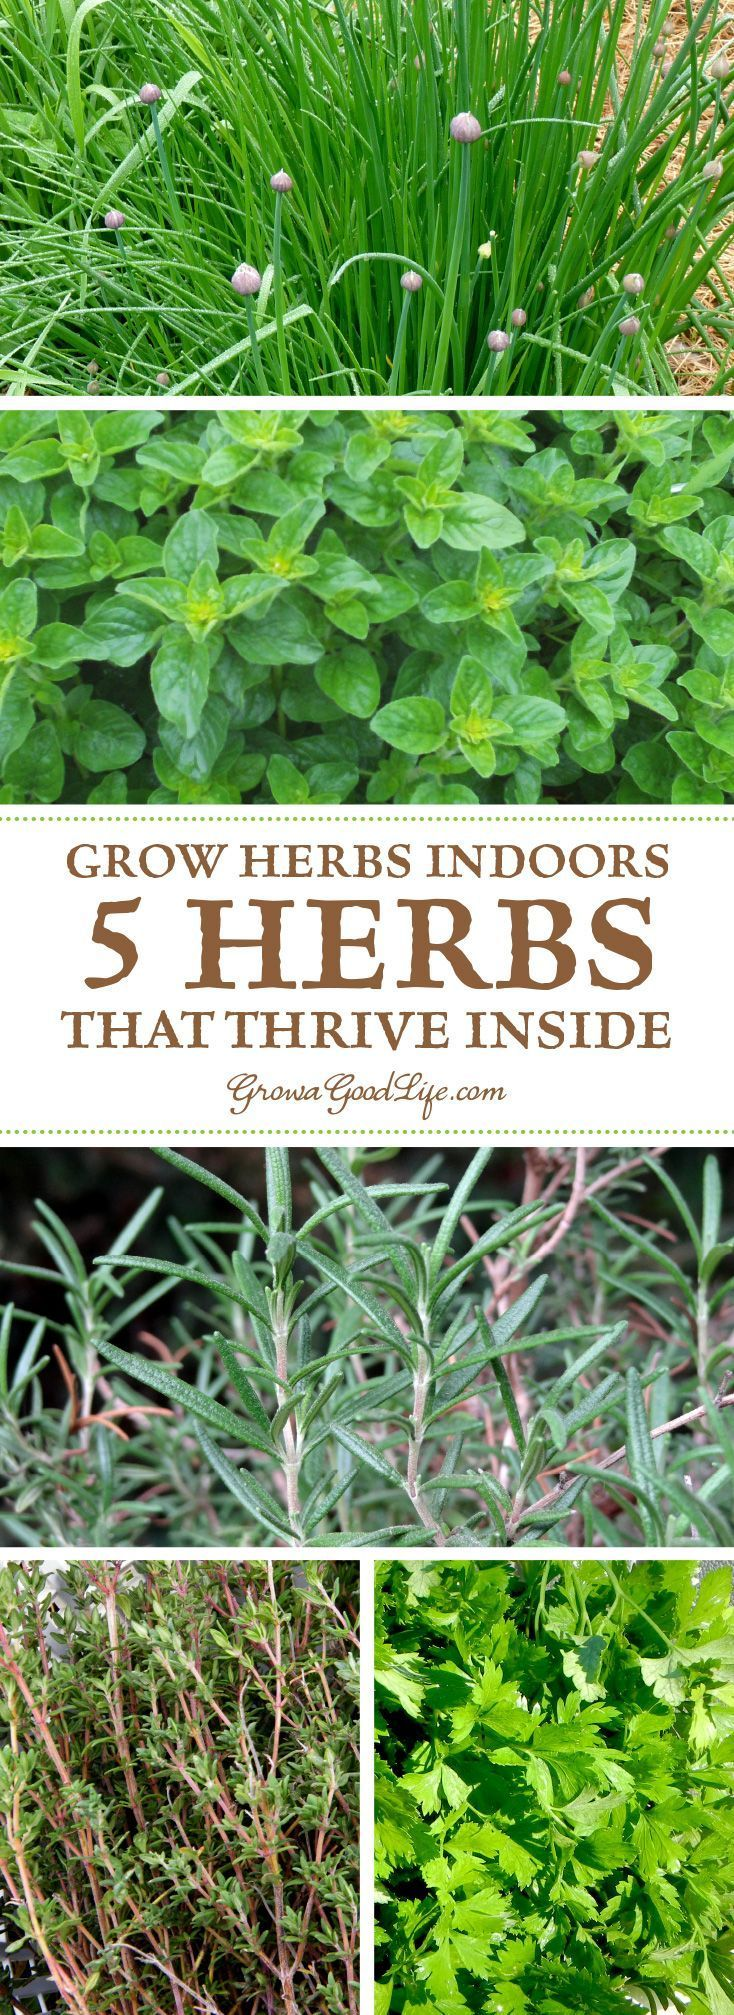 Grow Herbs Indoors 5 Herbs That Thrive Inside With 400 x 300